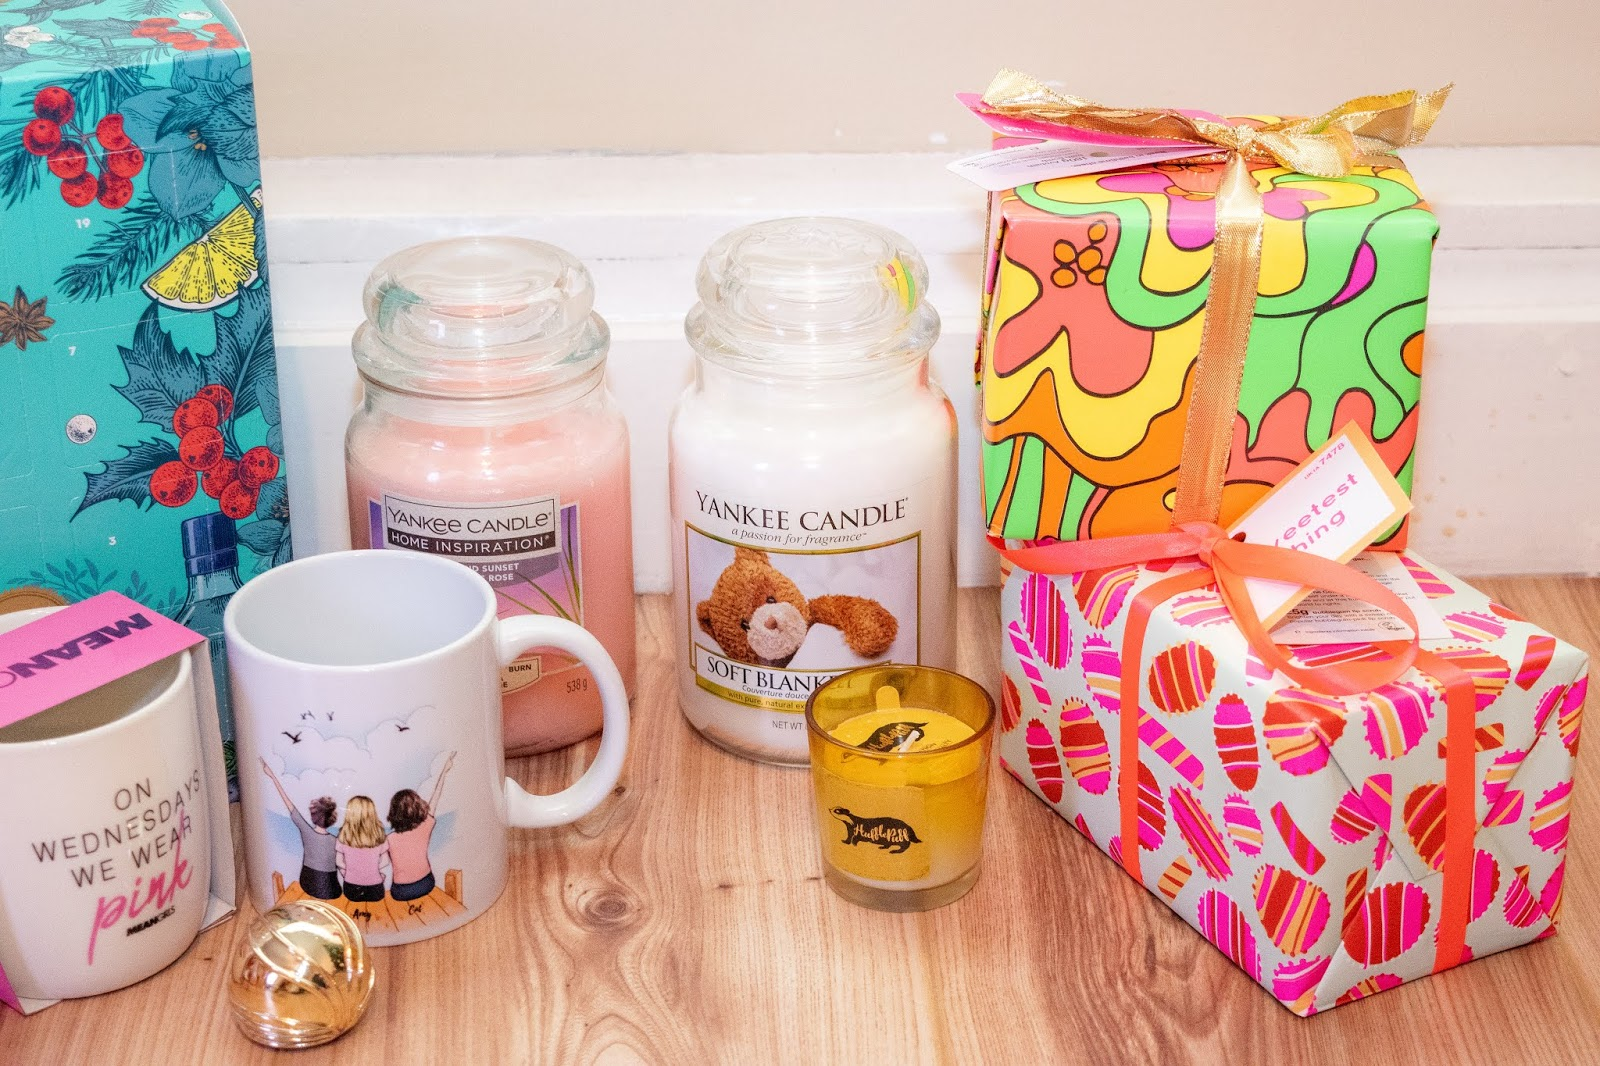 Food and home gifts together: lush gift sets, mugs, candles.